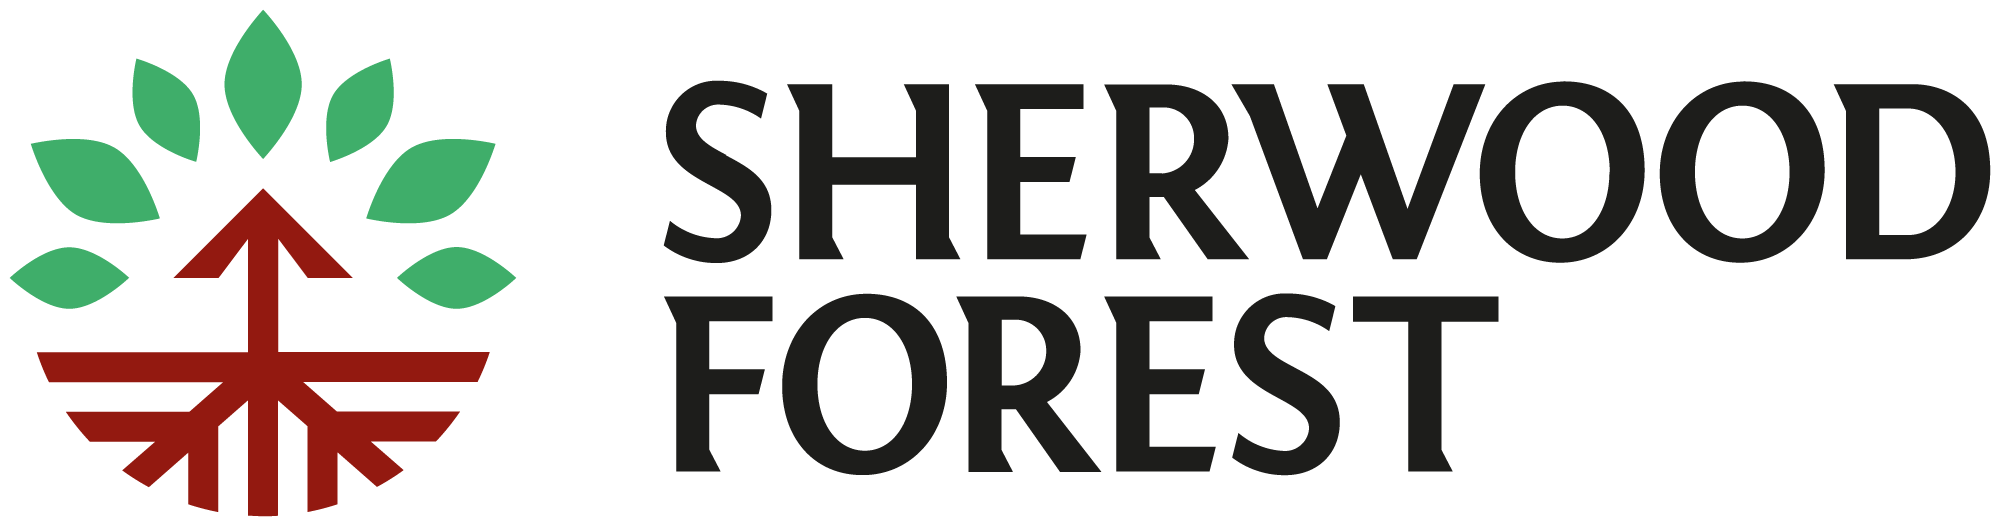 New Logo and Identity for Sherwood Forest by Cafeteria